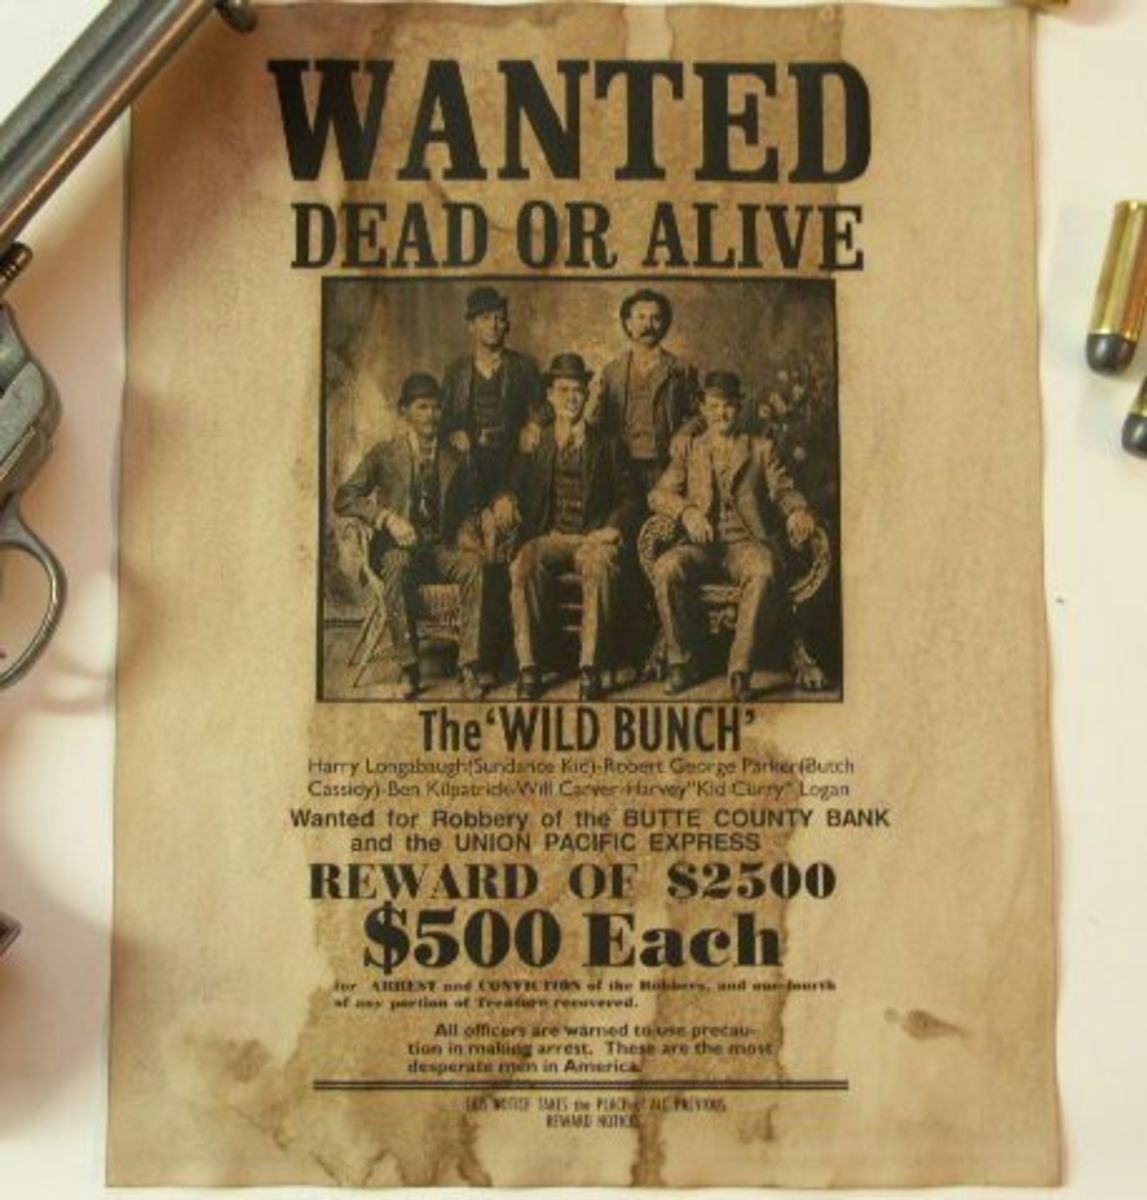 Wanted poster for the Butch Cassidy's Wild Bunch.